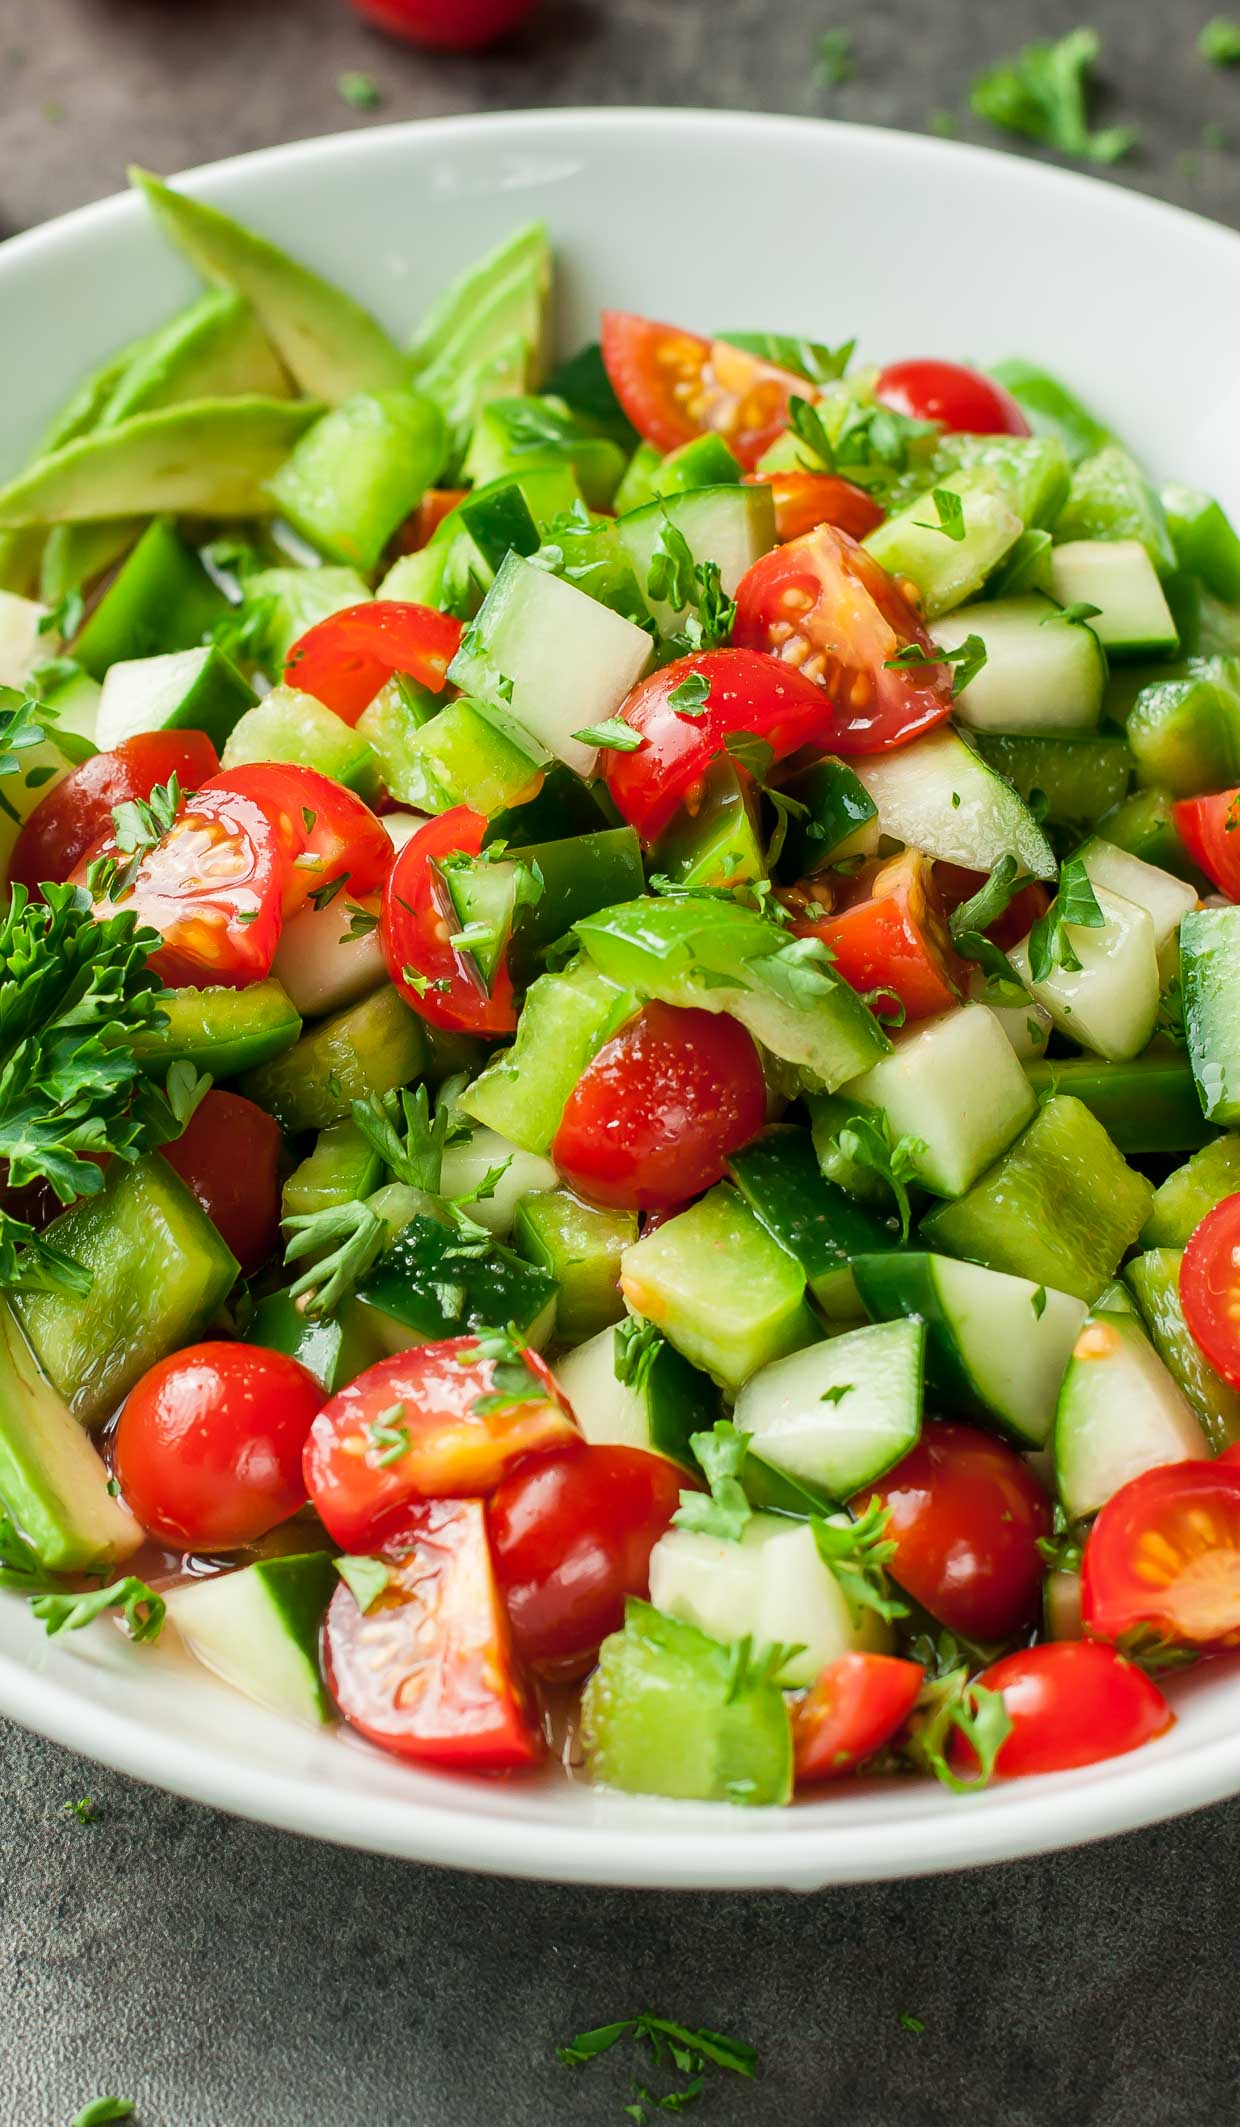 12 Tasty Salad Recipes to Step Up Your Salad Game